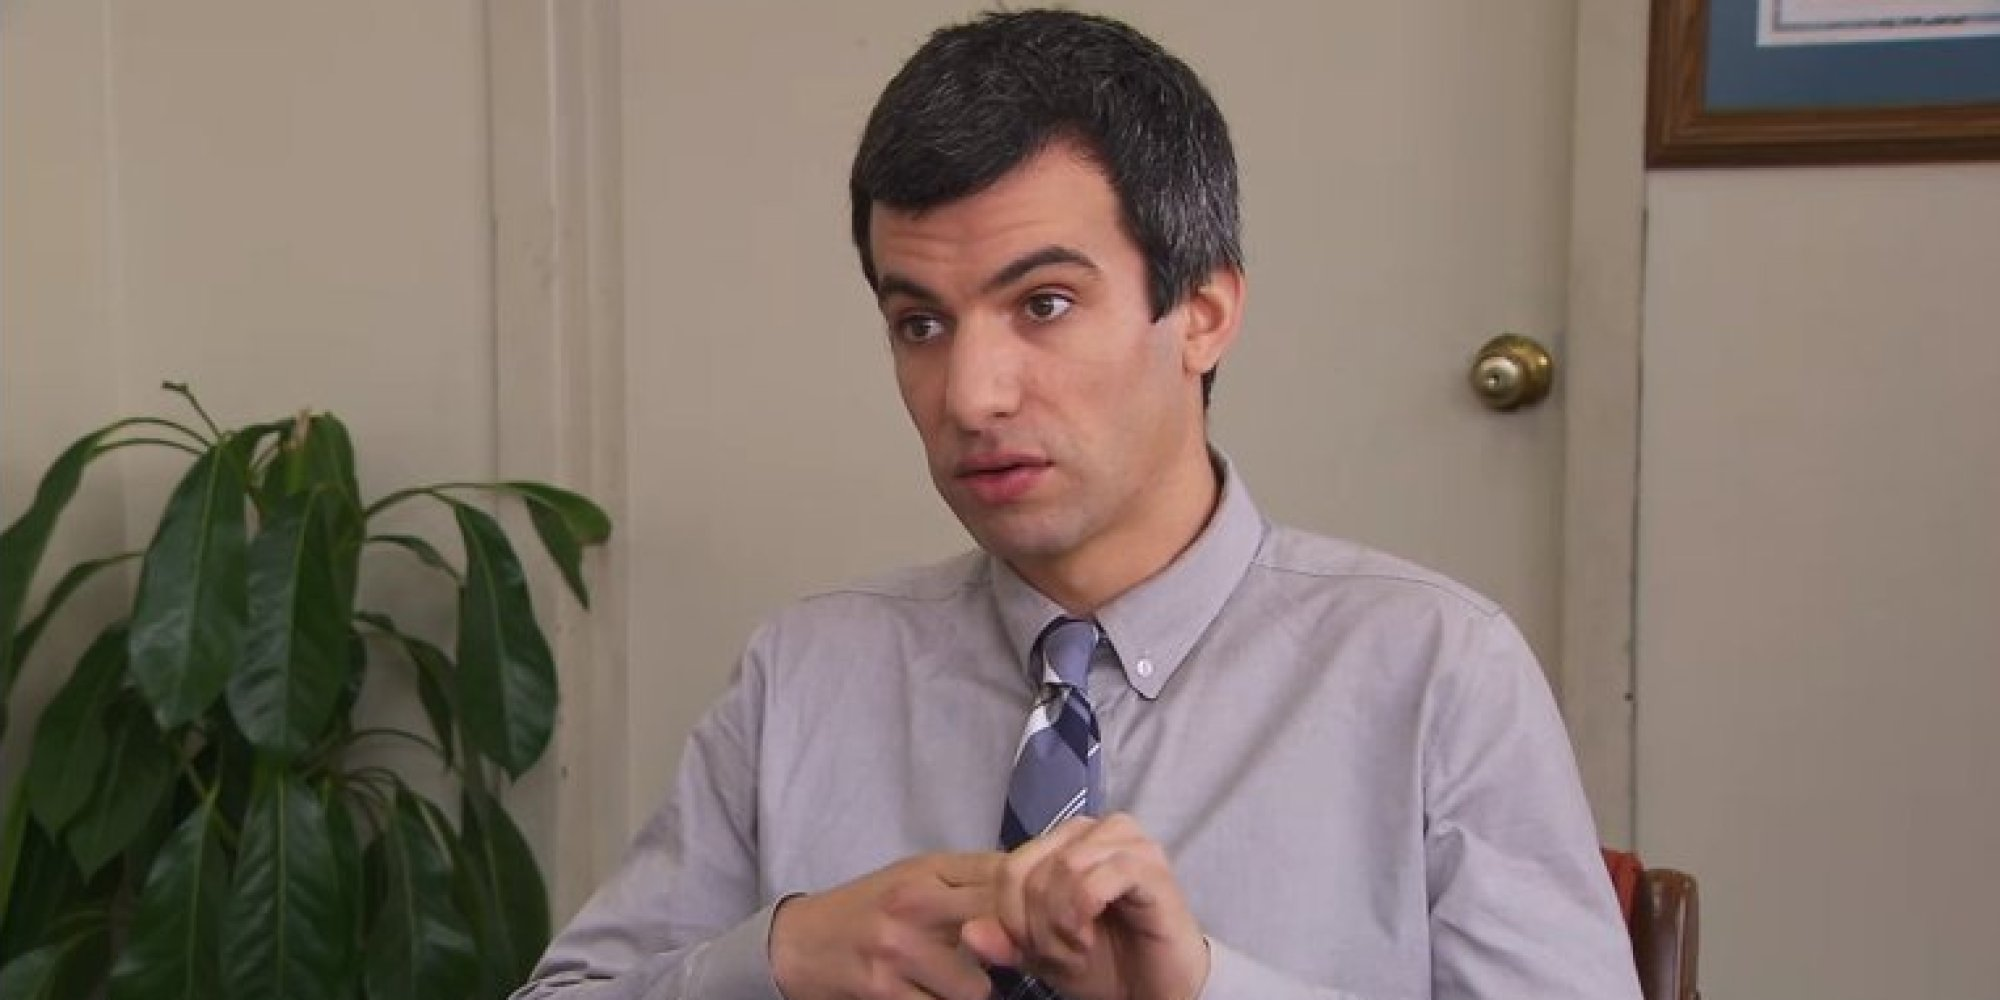 the comedic stylings of nathan fielder essay Author: dan o'shannon publisher: bloomsbury publishing usa isbn: 1441114955 size: 2087 mb format: pdf, epub view: 4229 download if you're looking for a book that.